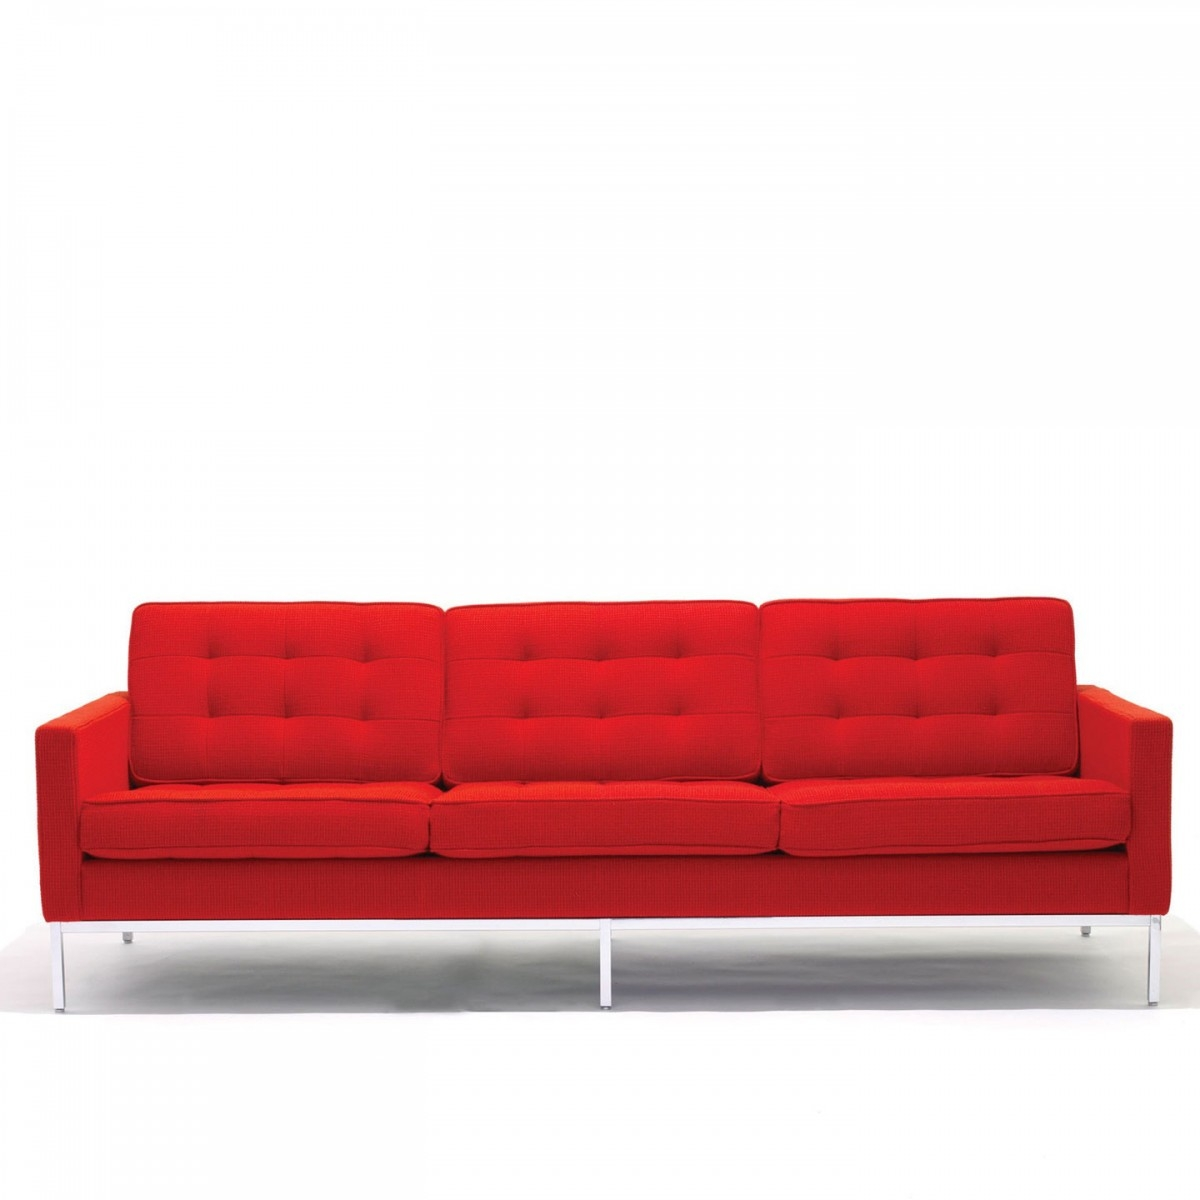 Florence Knoll 3 Seat Sofa In Florence Knoll 3 Seater Sofas (Image 5 of 15)